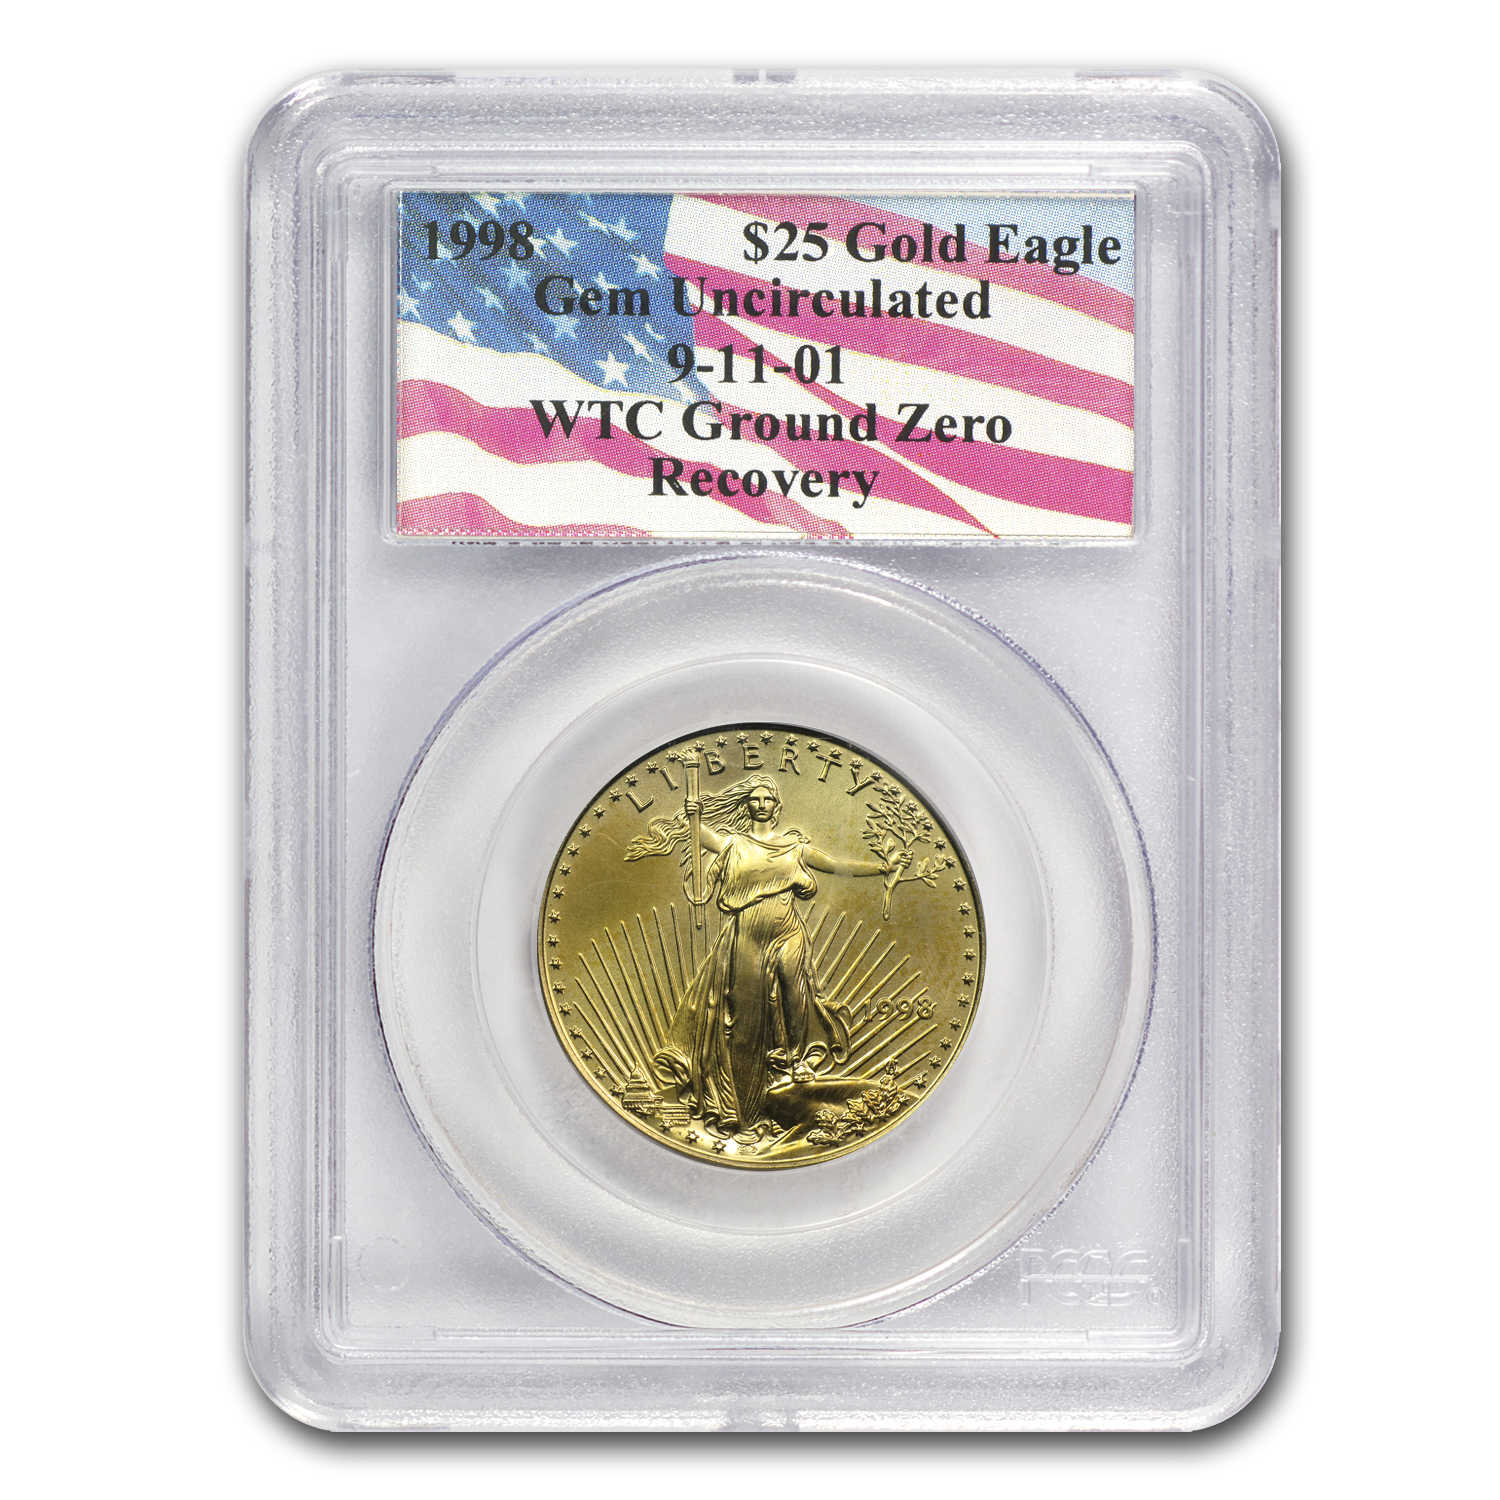 1998 1/2 oz Gold American Eagle Gem Unc PCGS (World Trade Center)